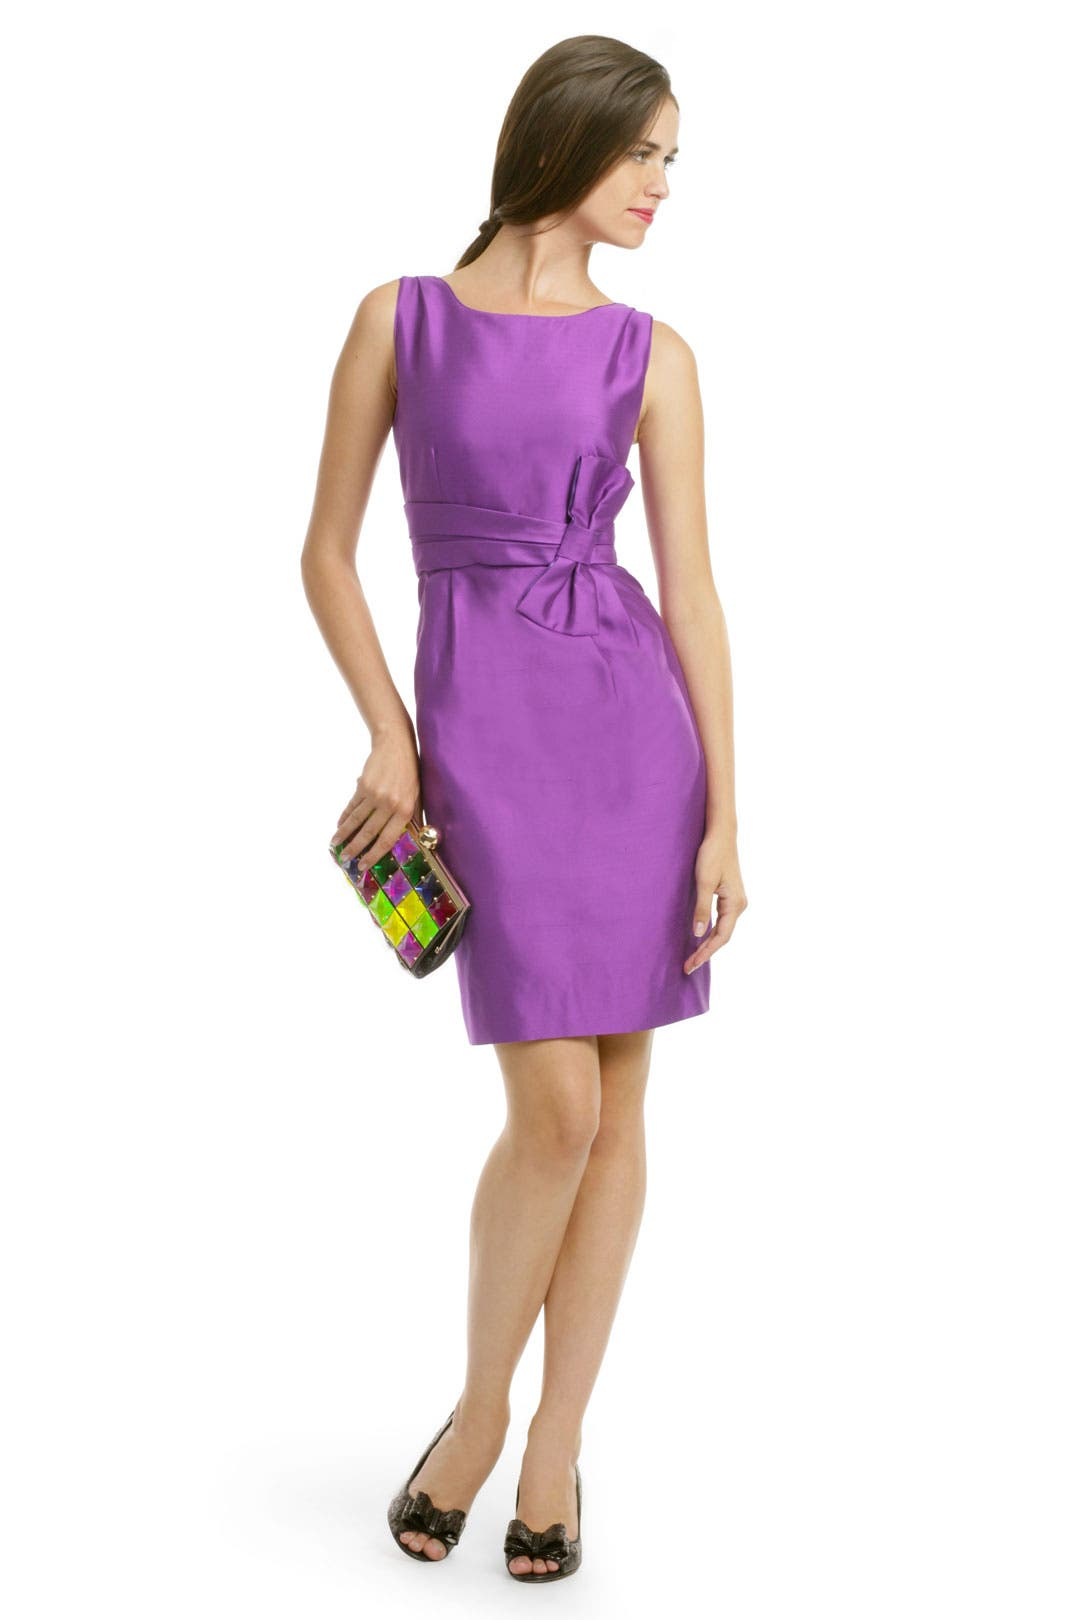 Mademoiselle Dress by kate spade new york